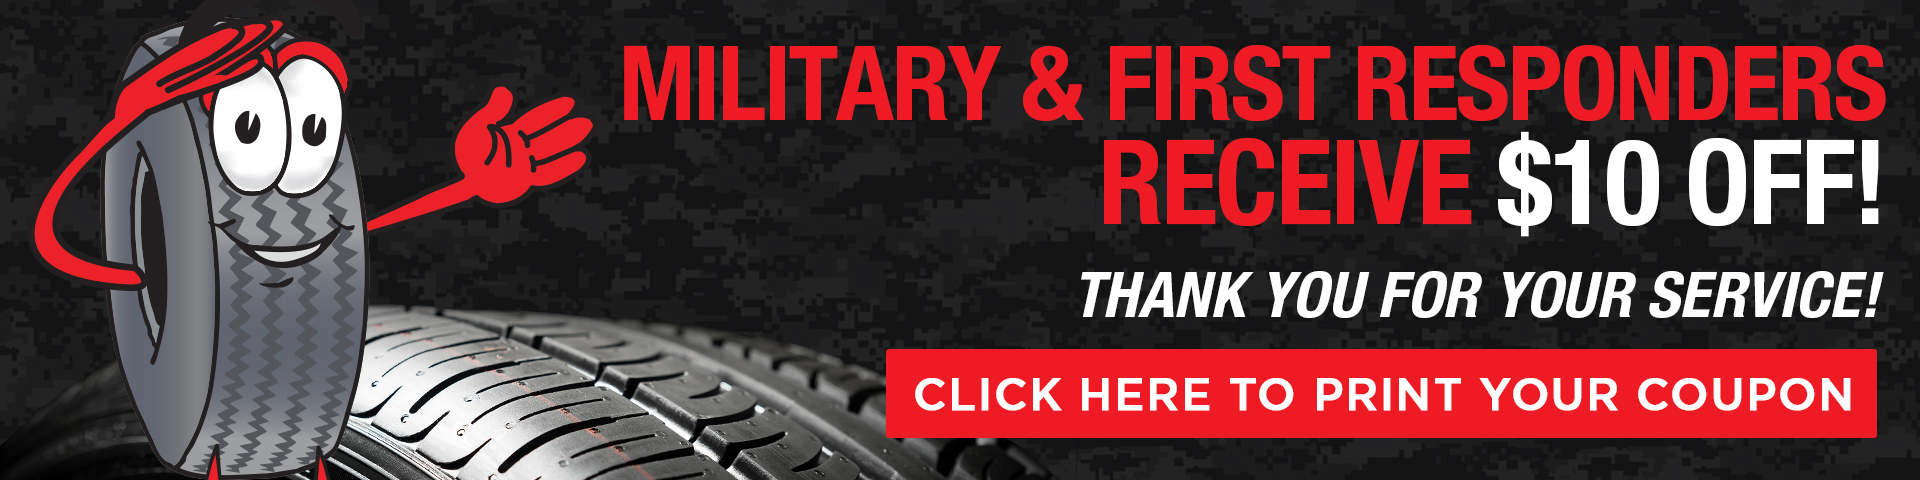 TP-Brake_Military-and-First-Responders_1920x480